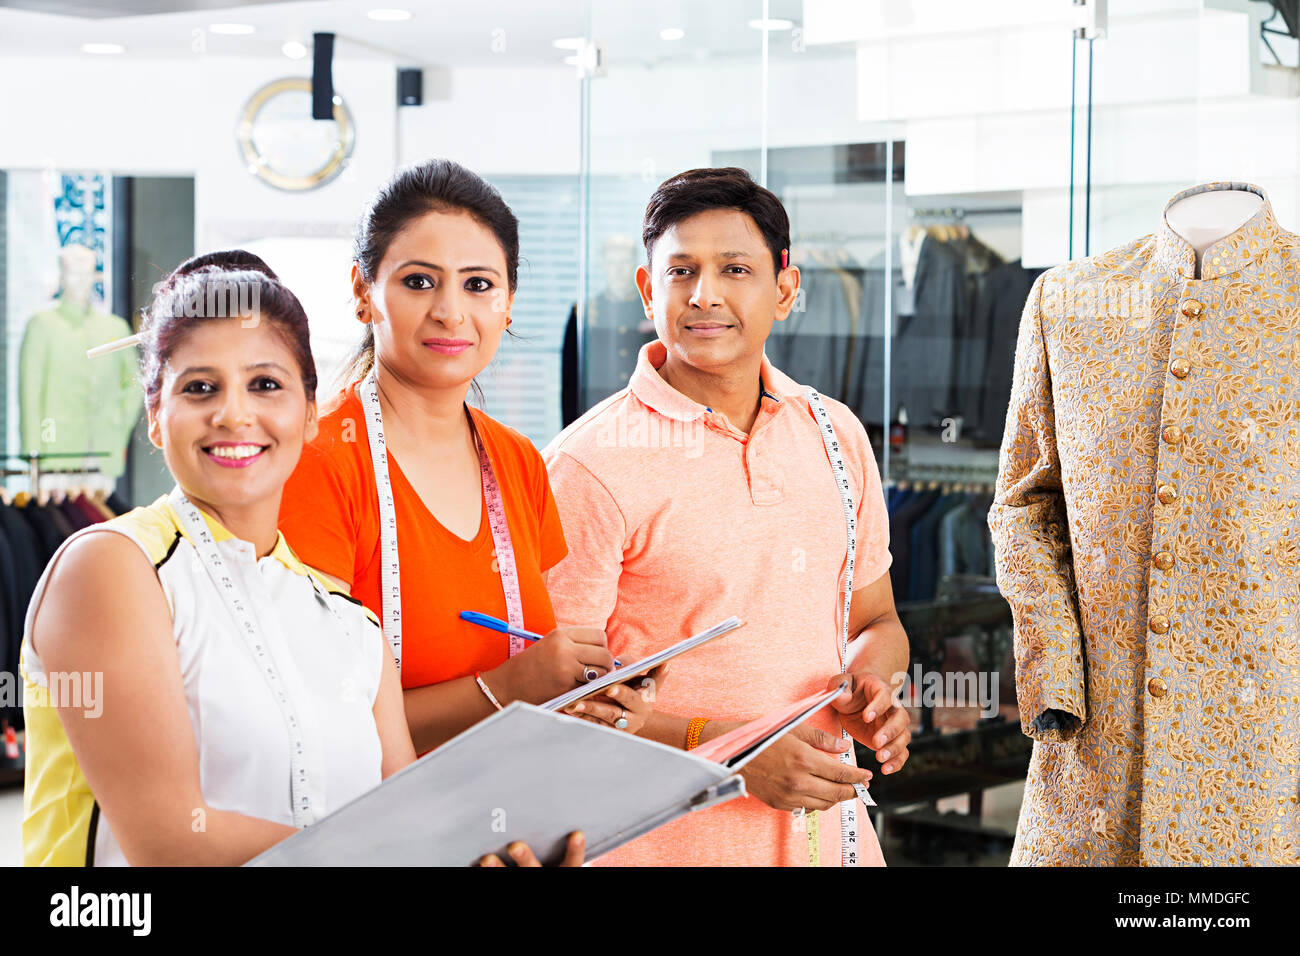 Three Boutique Tailors Teamwork Dress Designer Working In Clothes Shop Stock Photo Alamy